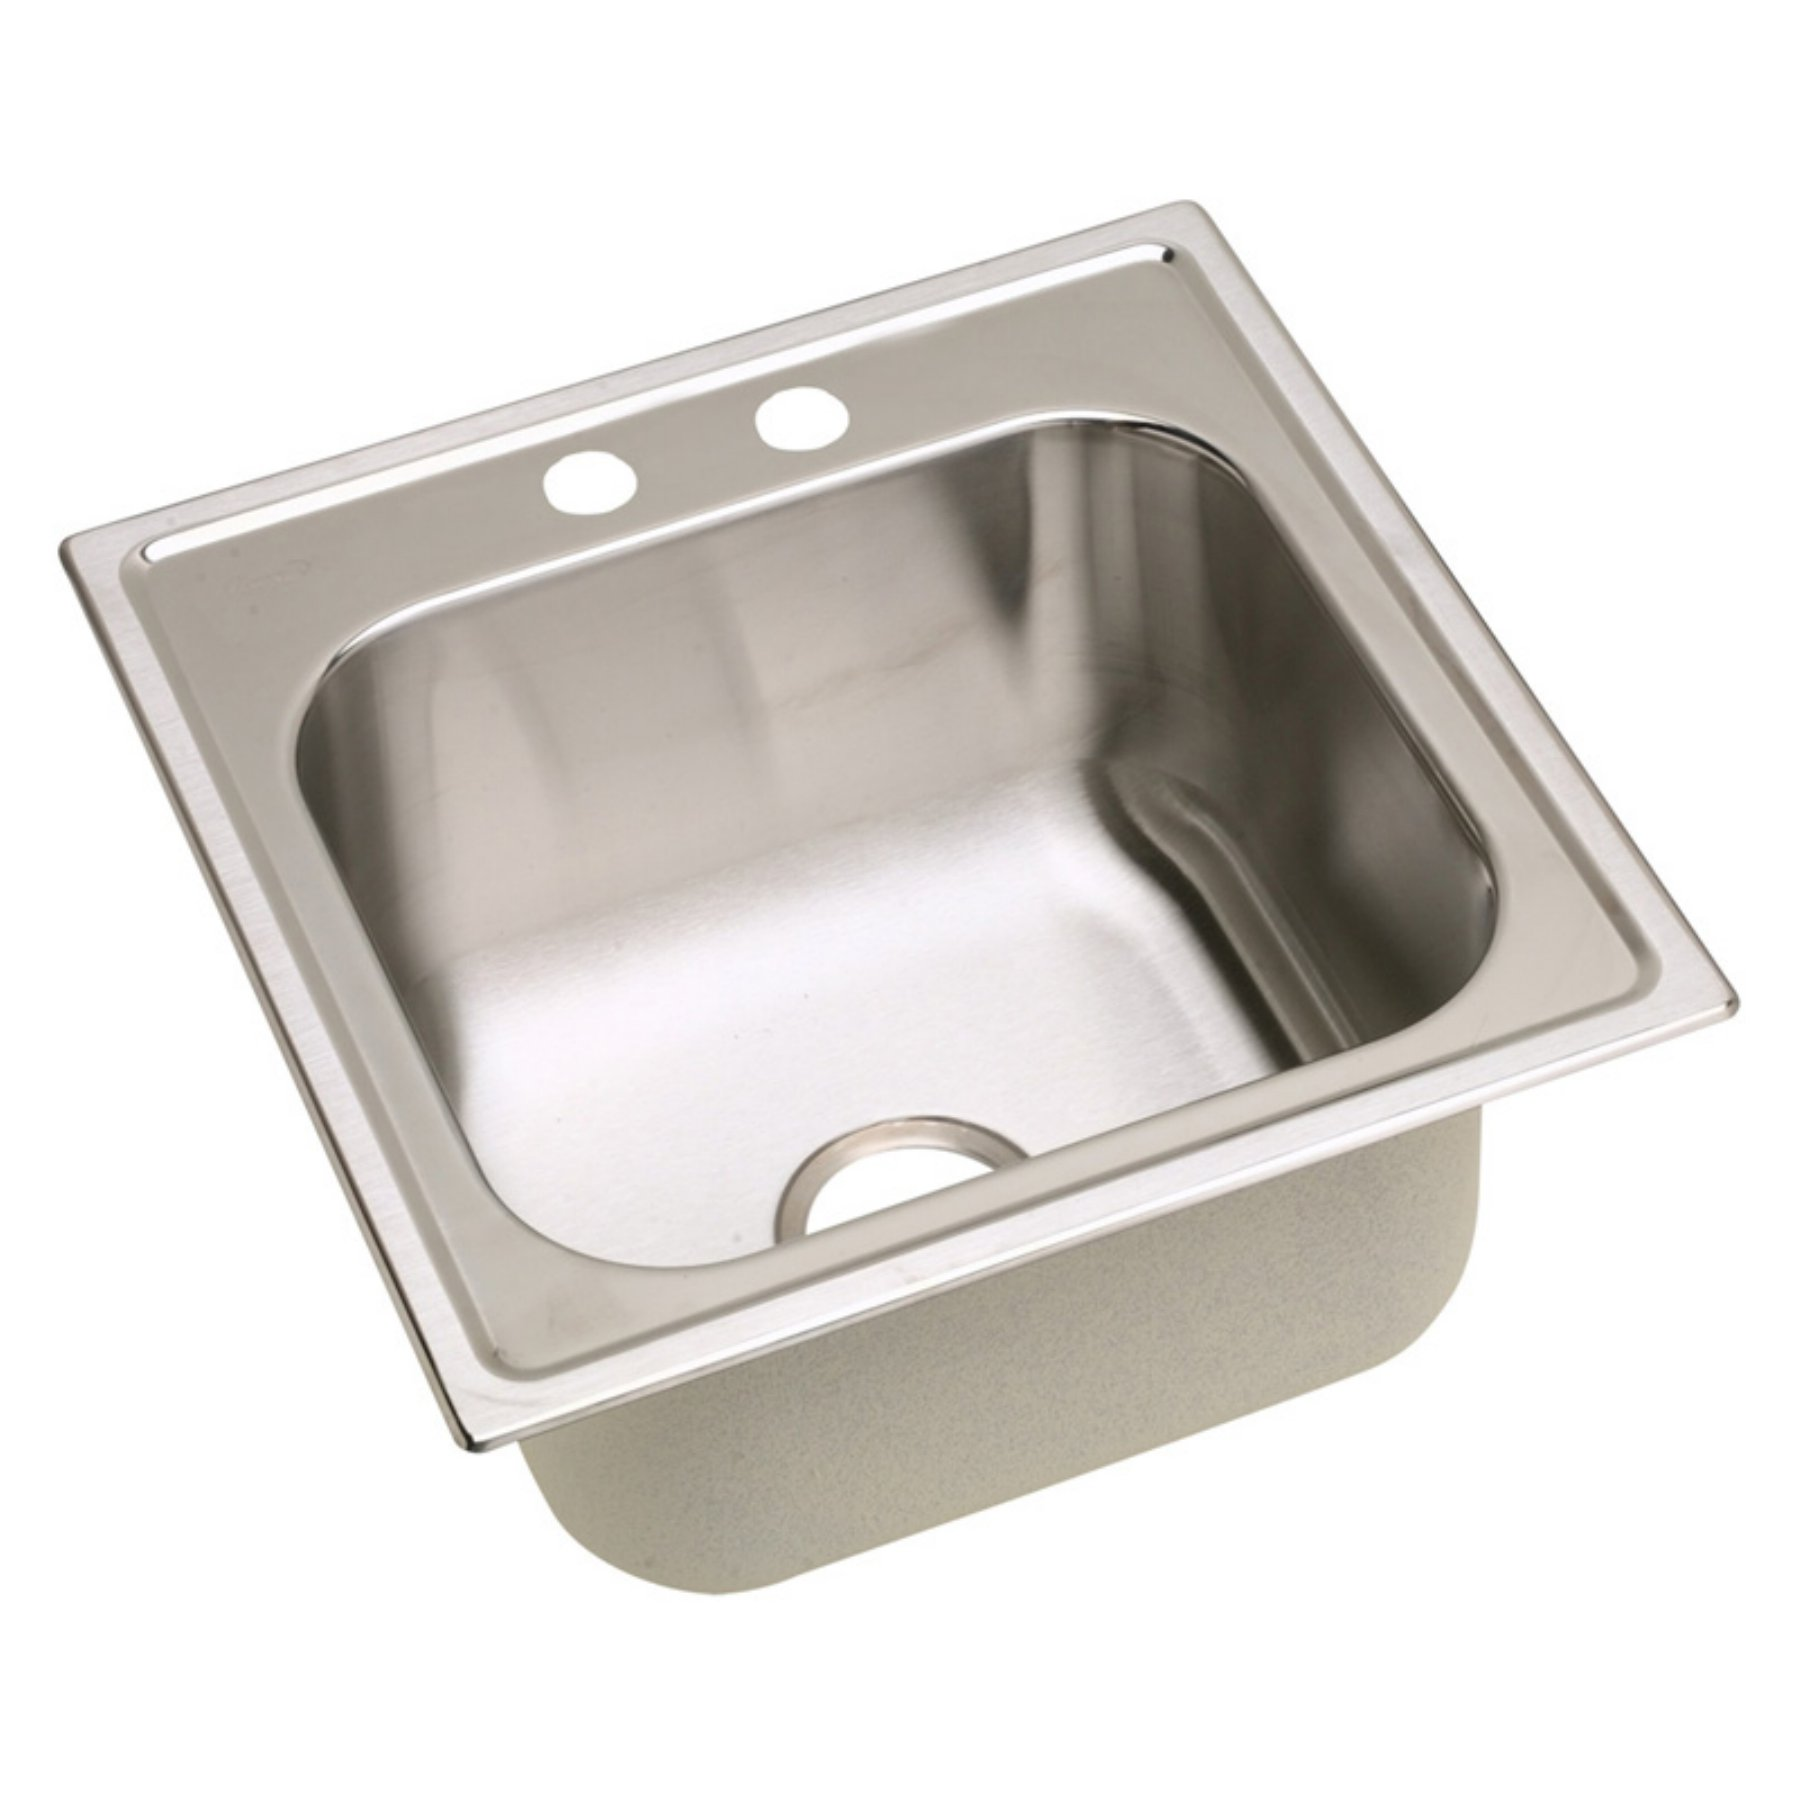 Elkay Dayton Dpc12020102 Top Mount Bar Sink Products Stainless